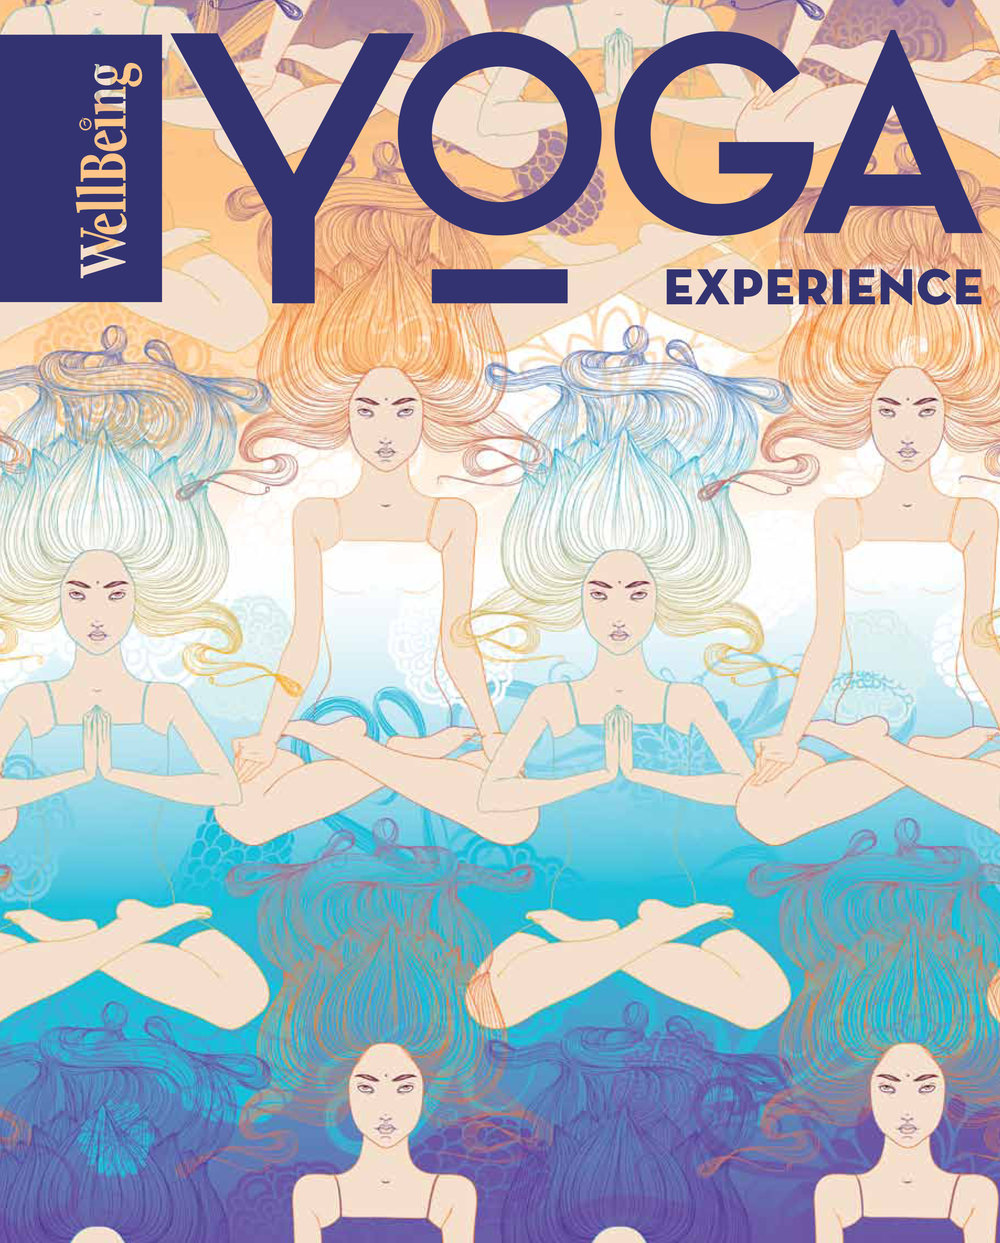 Yoga-Experience-Cover_FINAL.jpg